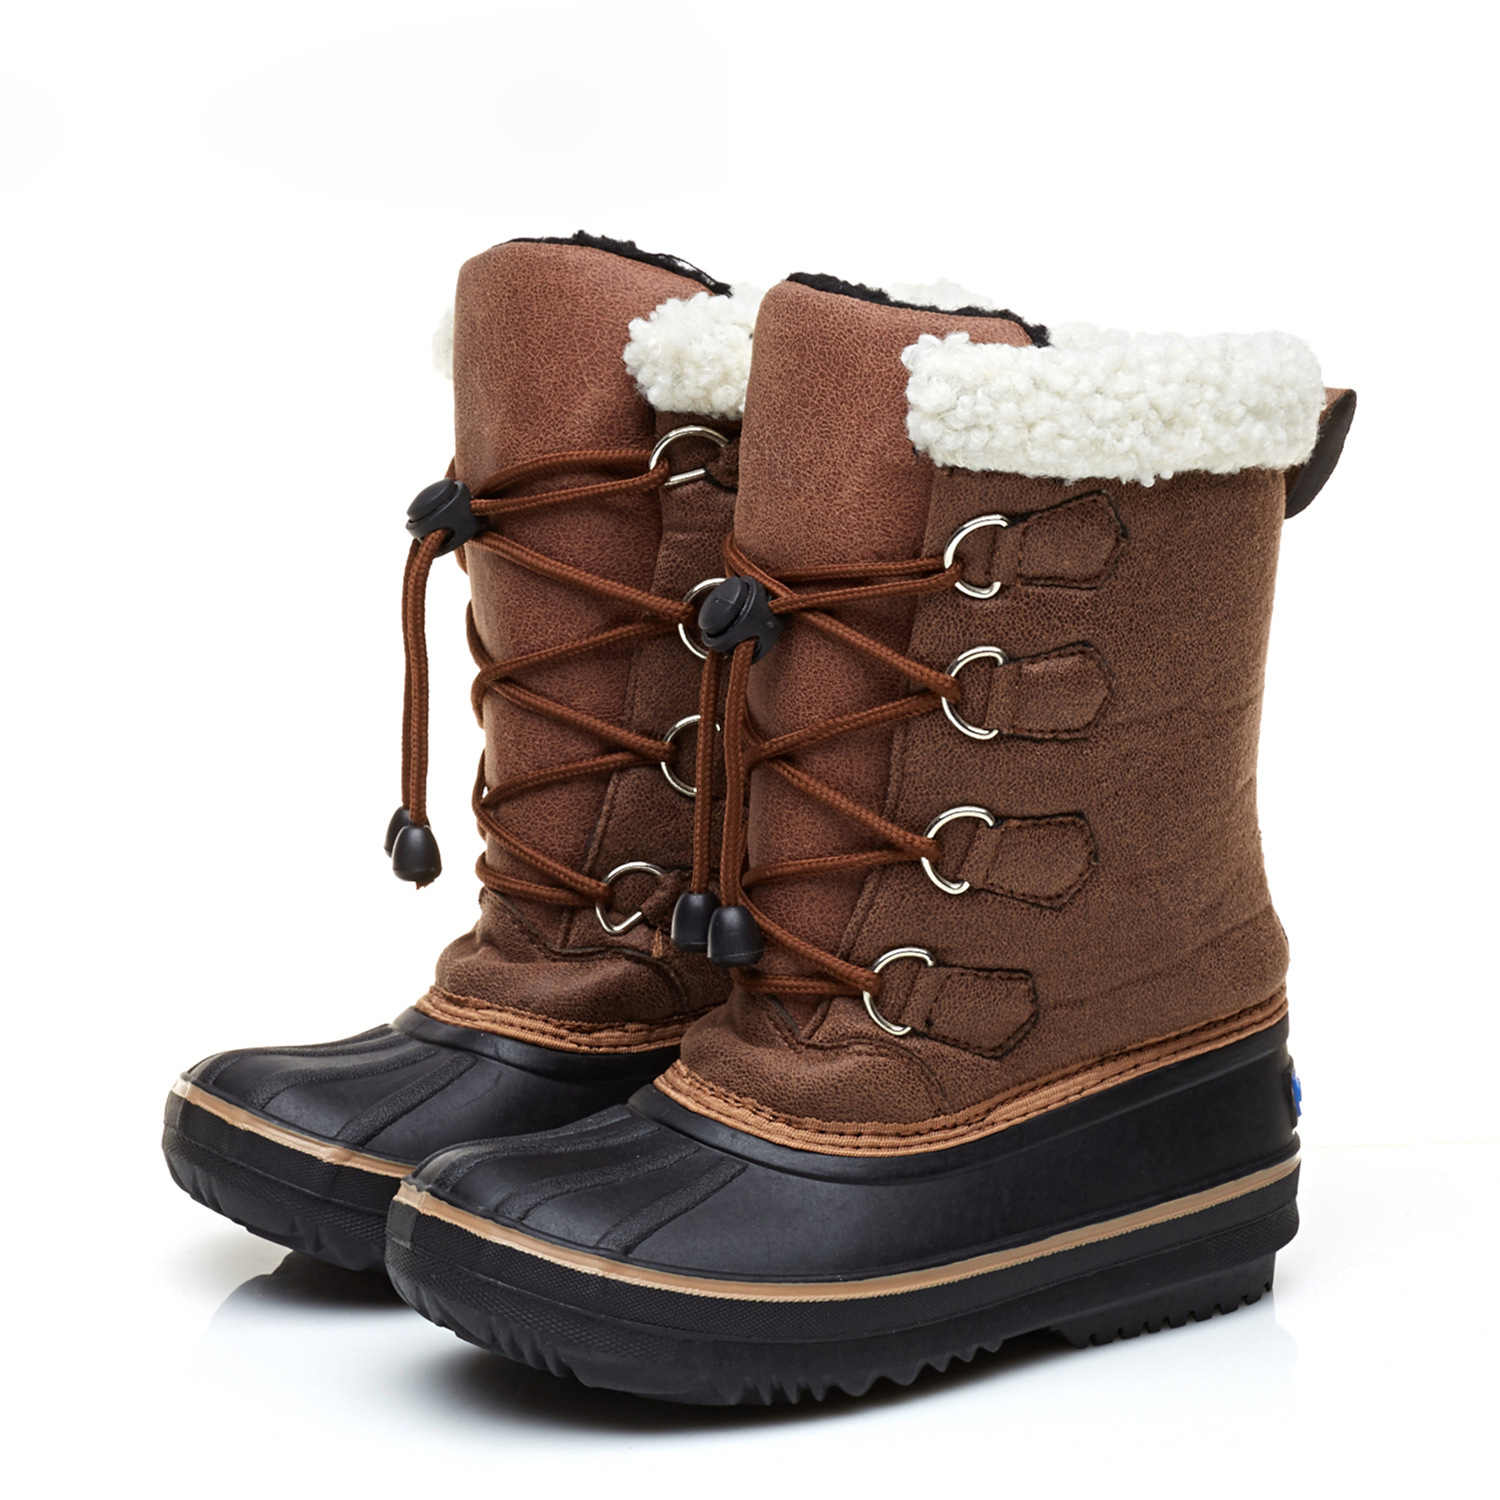 Kalupao Children Winter Footwear Waterproof Cotton Keep Warm Attipas Nordic Brown Girls Boots Rubber With Fur Red Baby Fashion Snow Boot In From Mother Kids